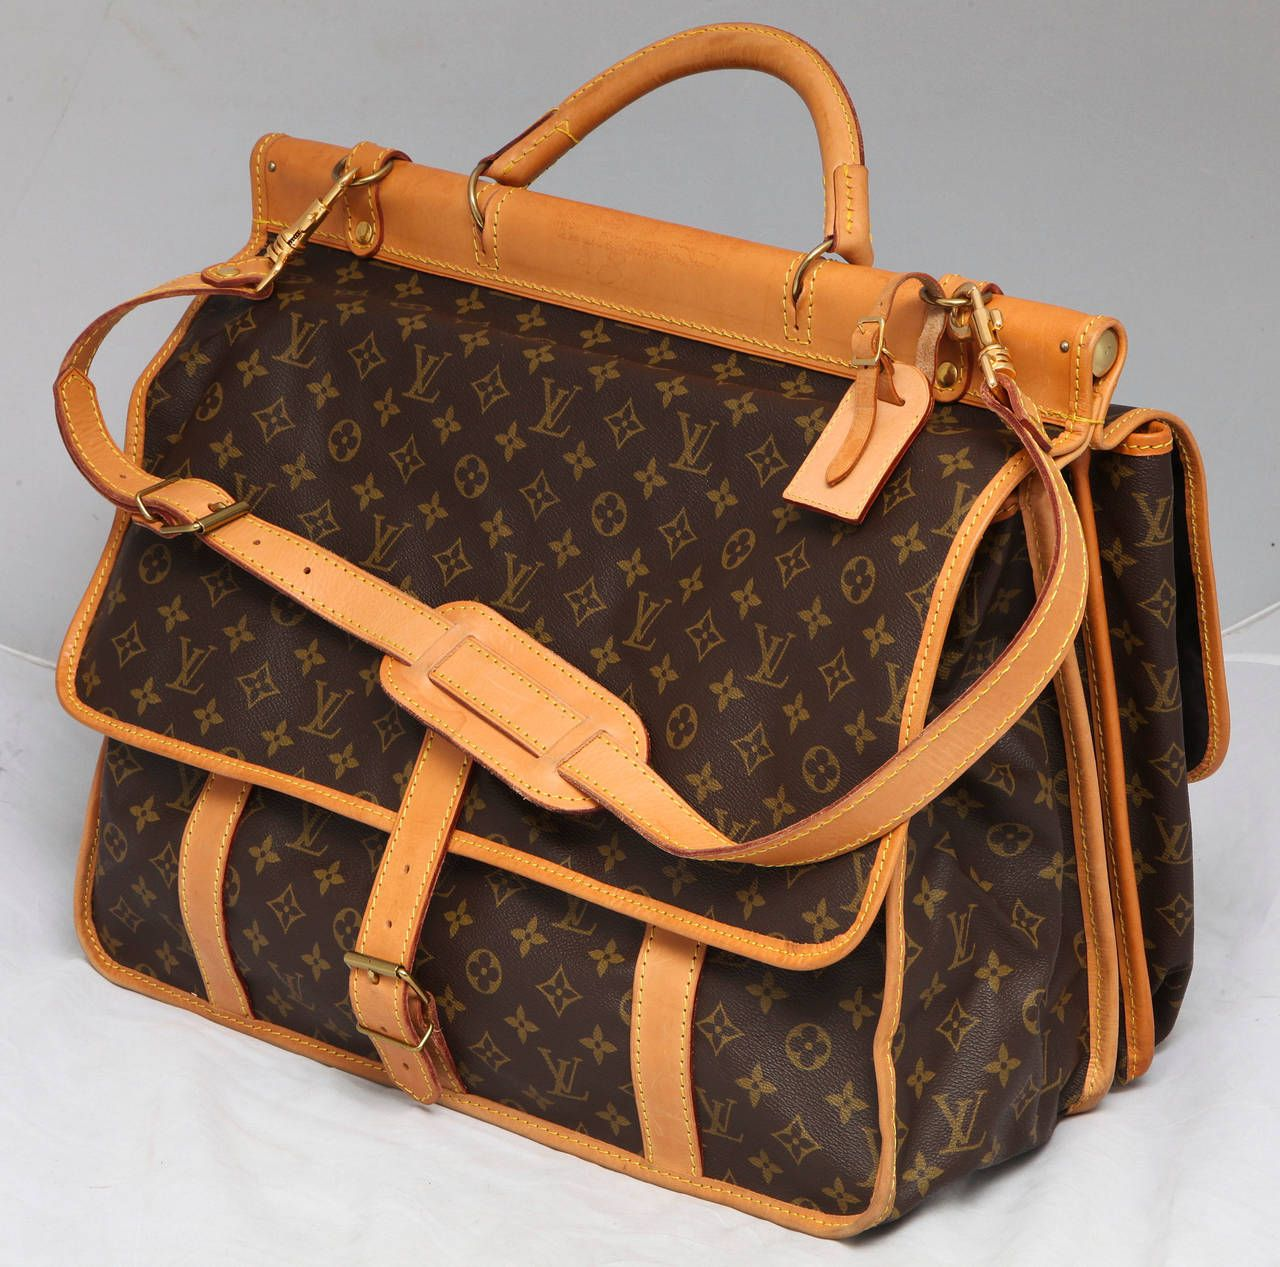 1980s Louis Vuitton Hunting Bag Carry On 1stdibs Com Louis Vuitton Louis Vuitton Handbags Louis Vuitton Handbags Outlet